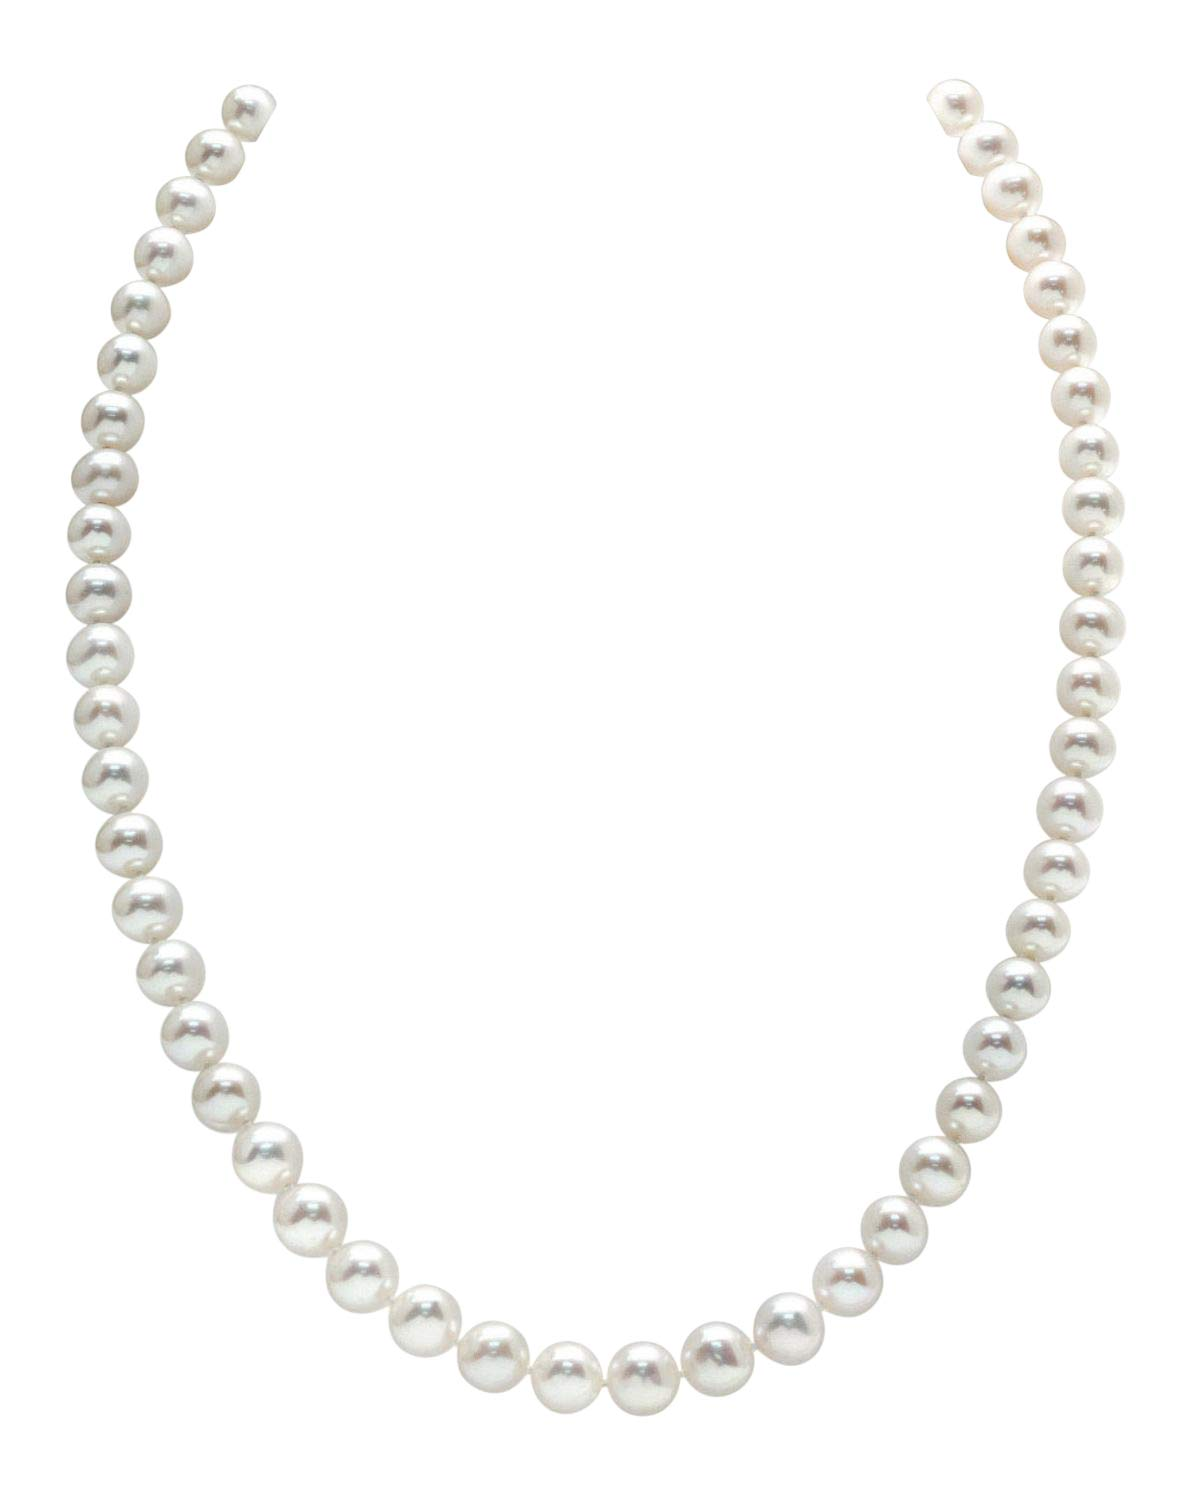 THE PEARL SOURCE 14K Gold 5.0-5.5mm AAAA Quality White Freshwater Cultured Pearl Necklace for Women in 16'' Choker Length